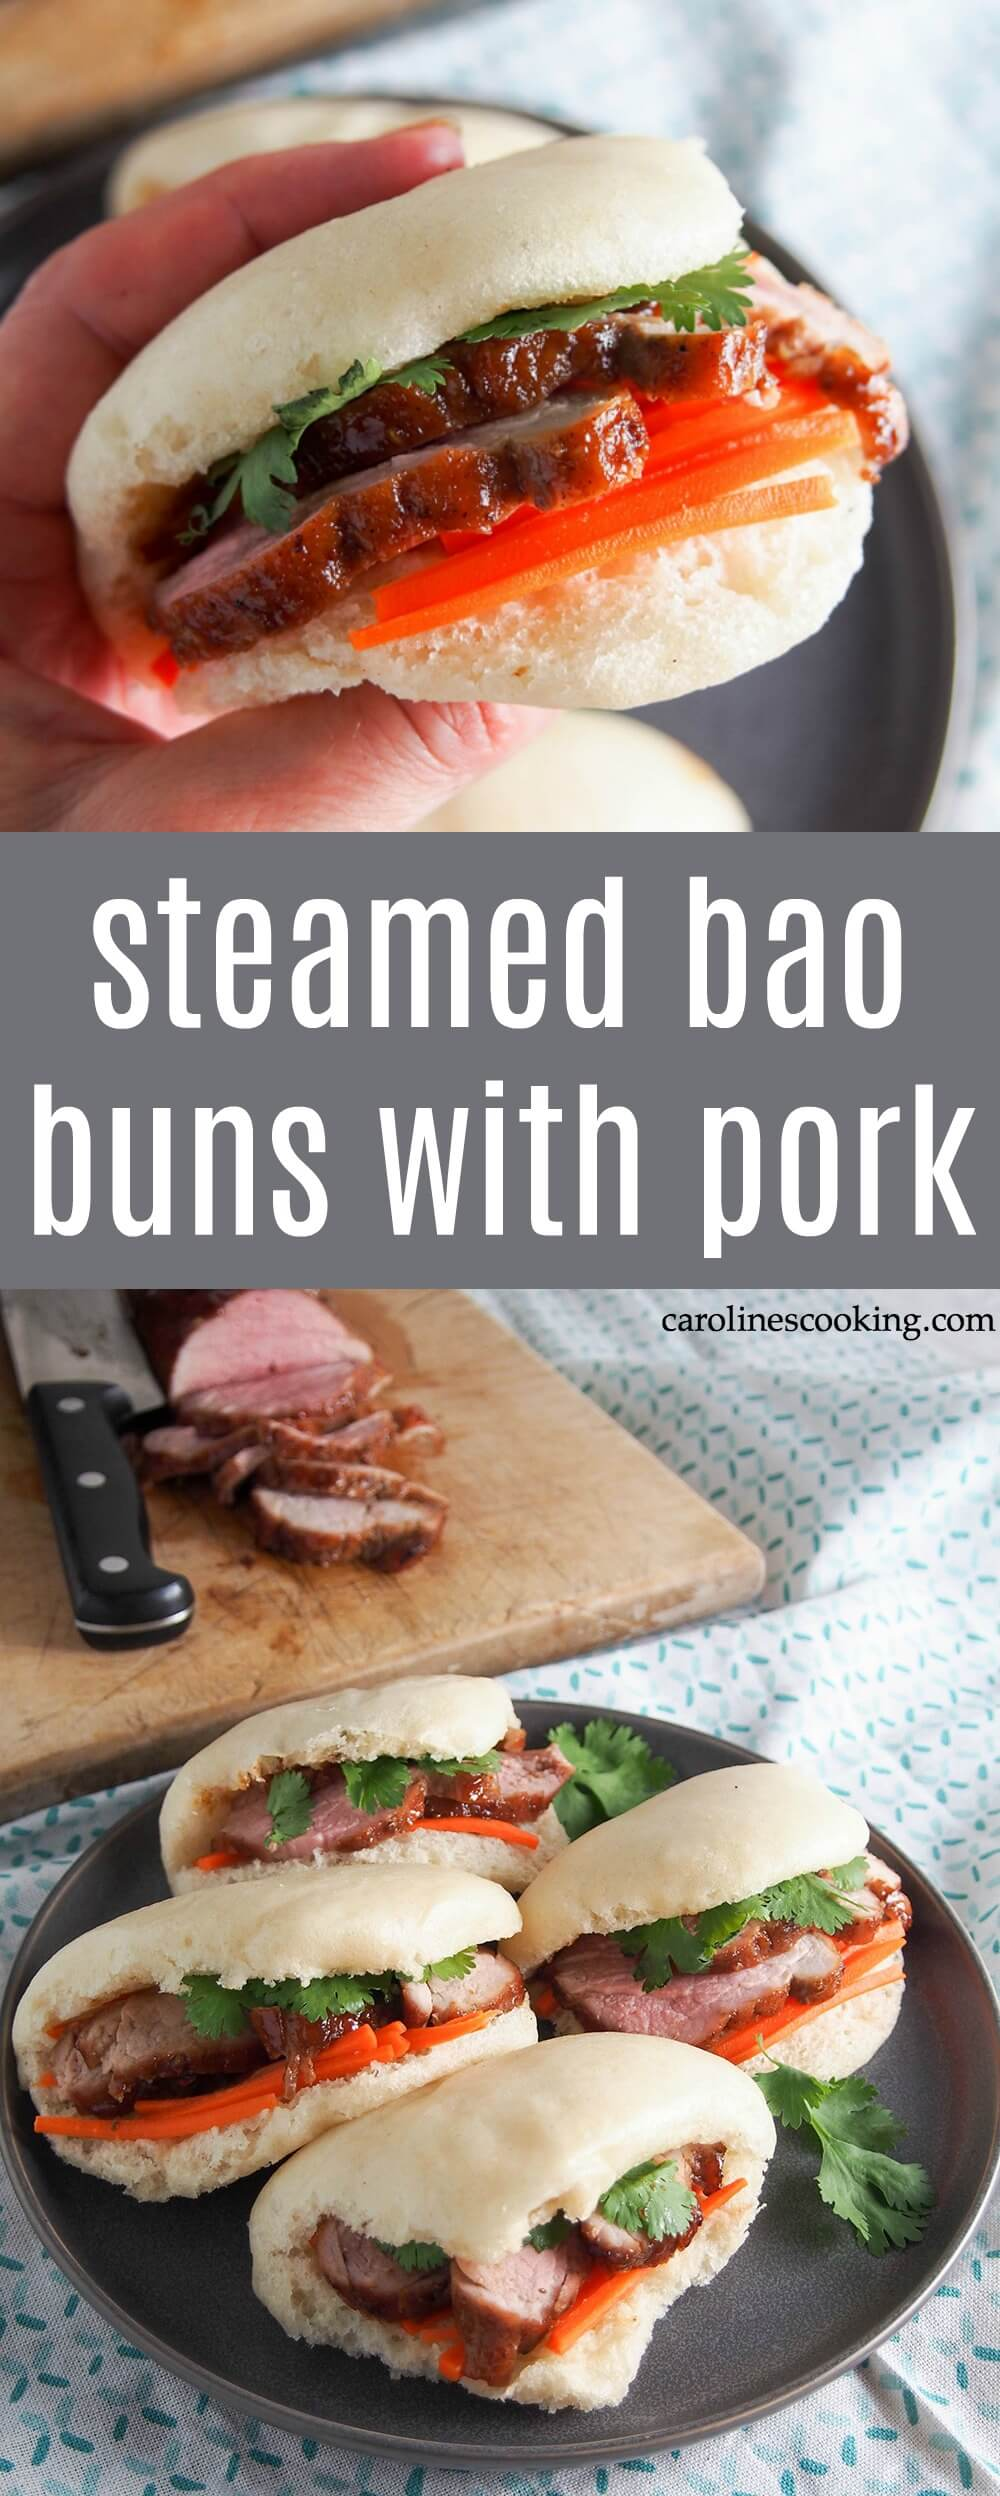 These steamed bao buns with pork are a delicious feast for the senses! With tender pork tenderloin, crunchy veg and a pillowy soft bun, they're a handheld treat perfect as an appetizer or light meal. #bao #pork #chinesepork #ad